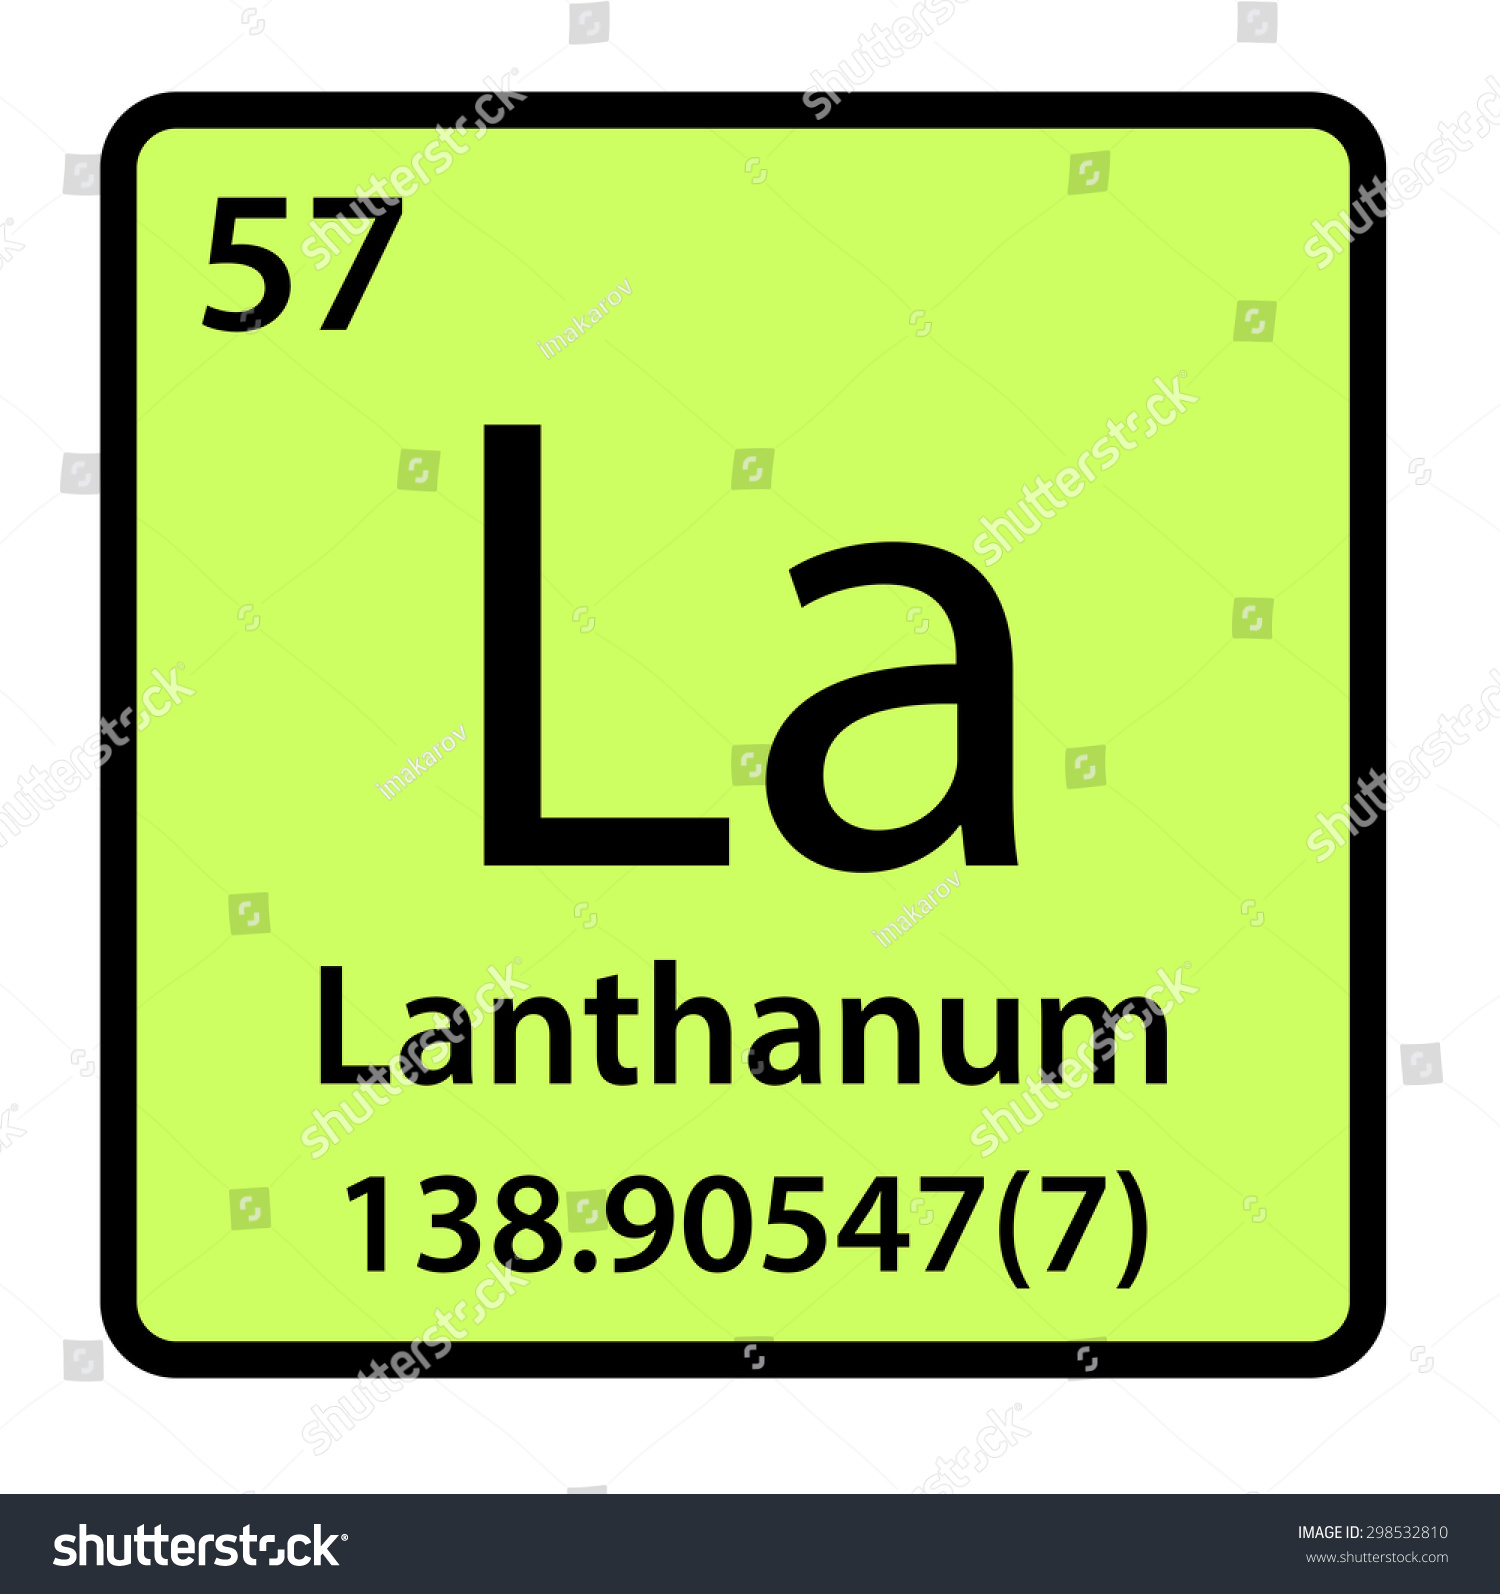 Element lanthanum periodic table stock illustration 298532810 element lanthanum of the periodic table gamestrikefo Image collections